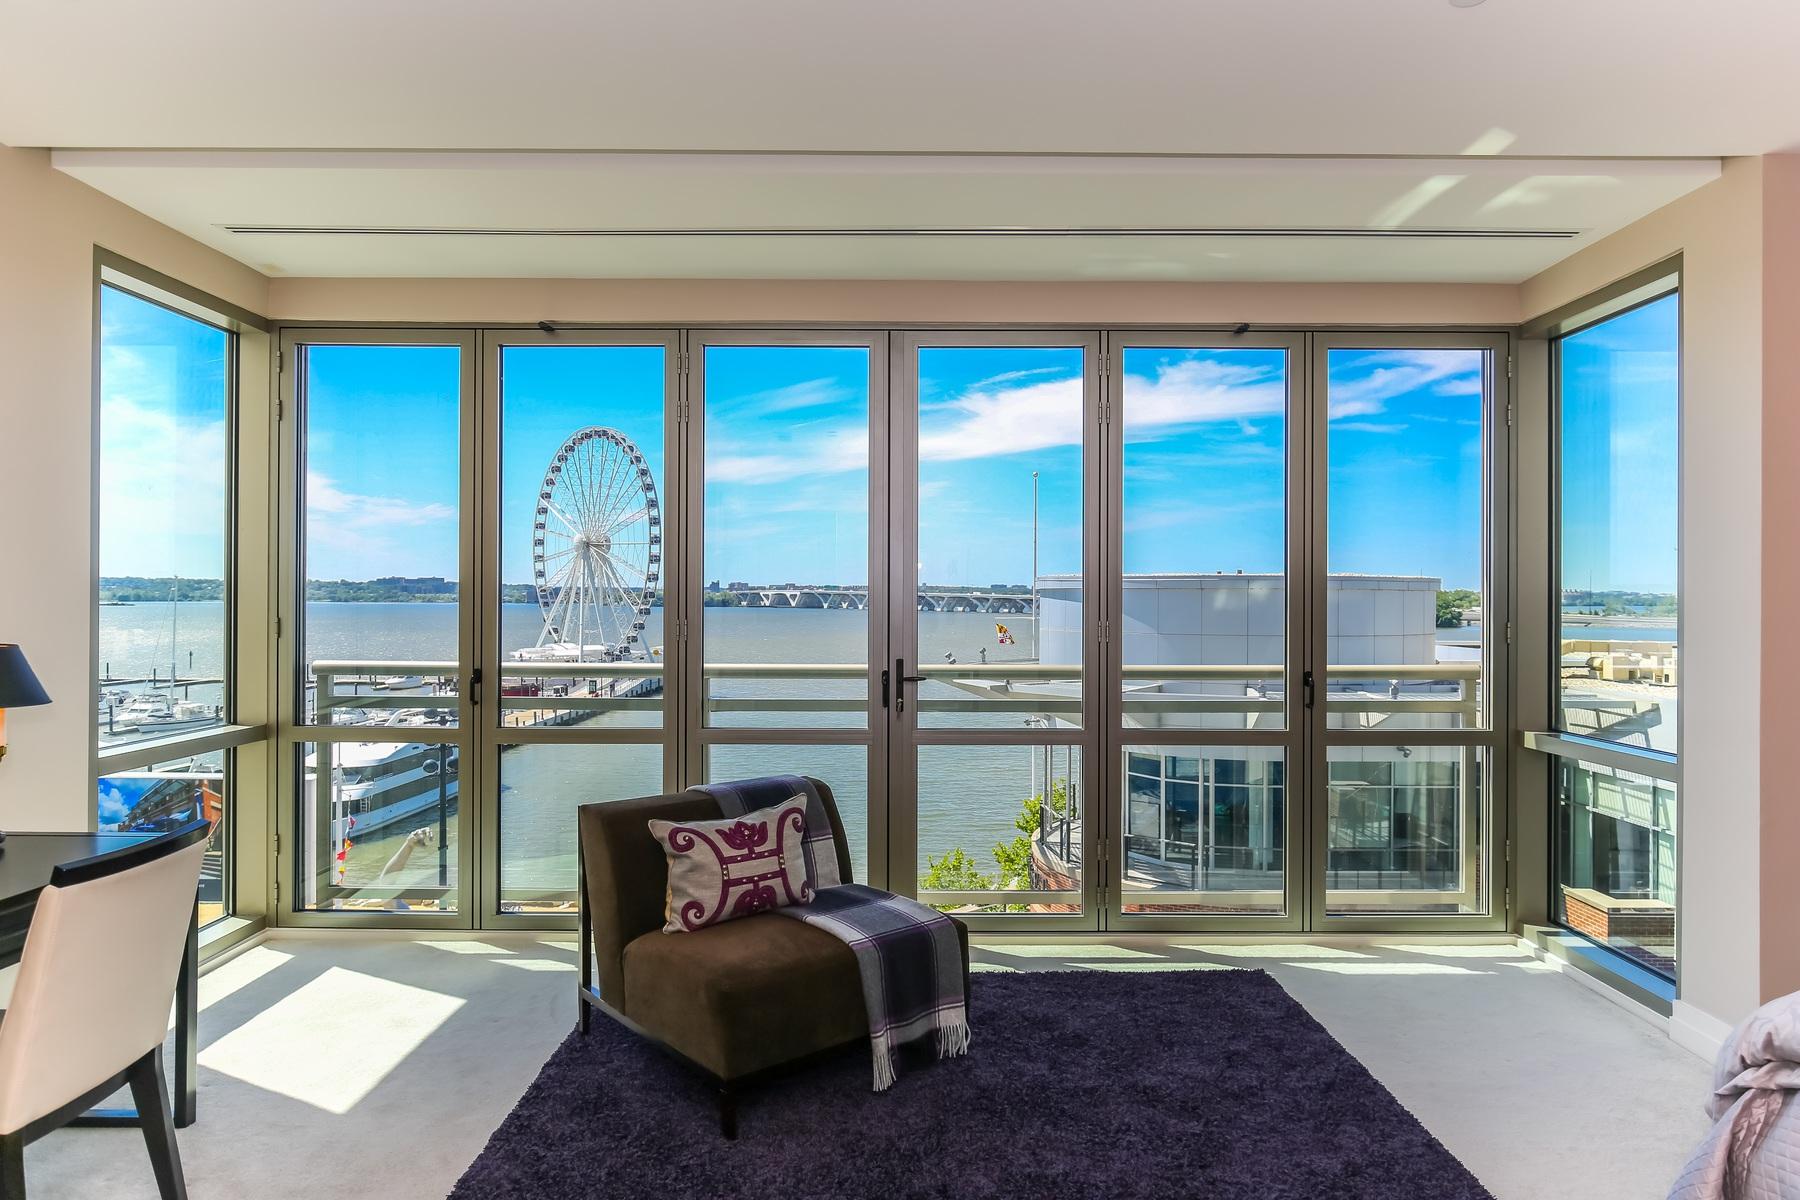 Additional photo for property listing at 147 Waterfront 301, National Harbor 147 Waterfront St 301 Oxon Hill, Maryland 20745 Vereinigte Staaten